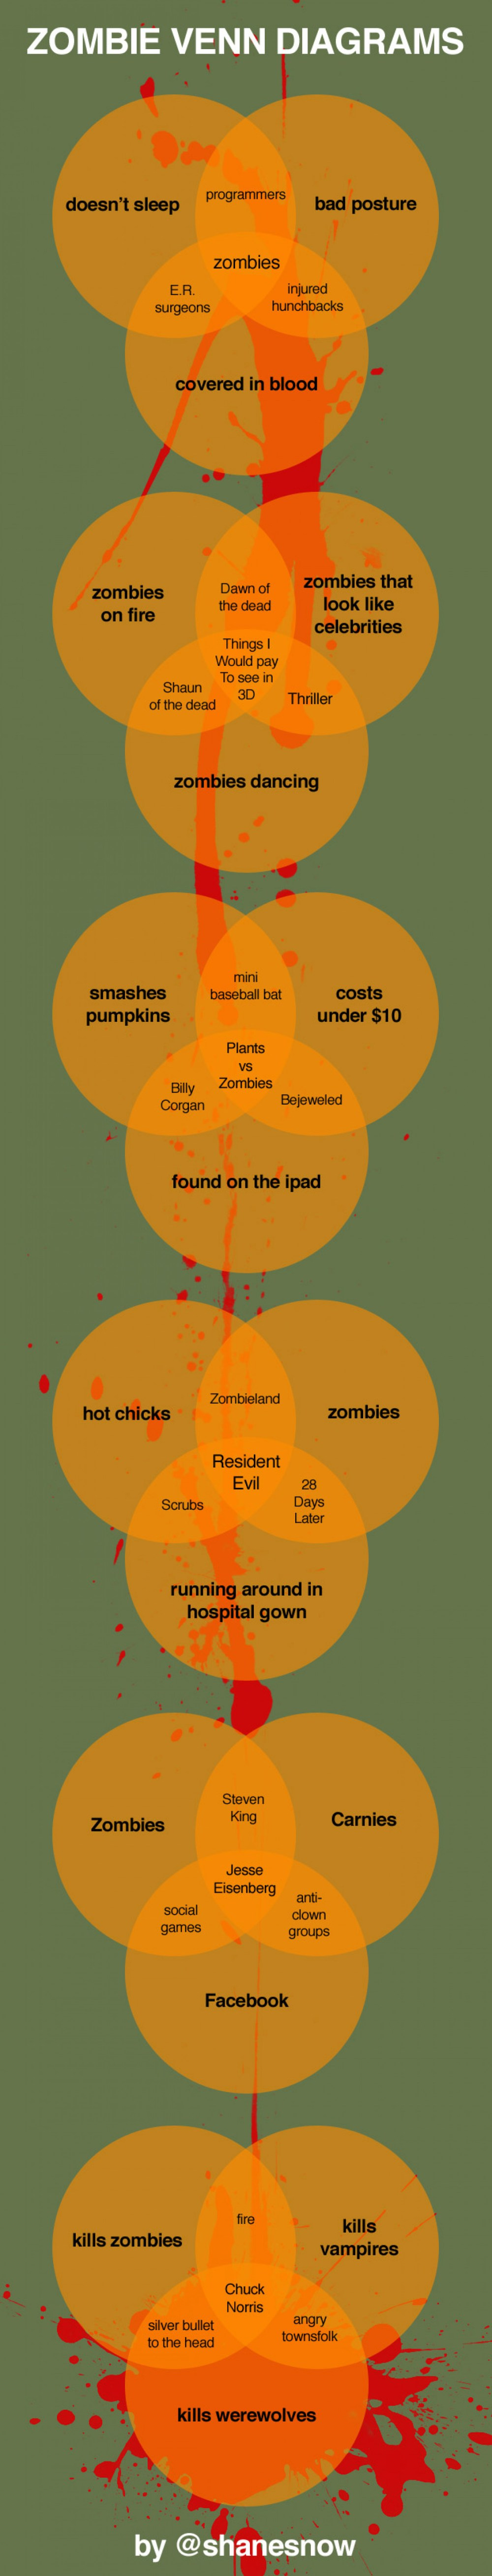 medium resolution of zombie venn diagrams infographic